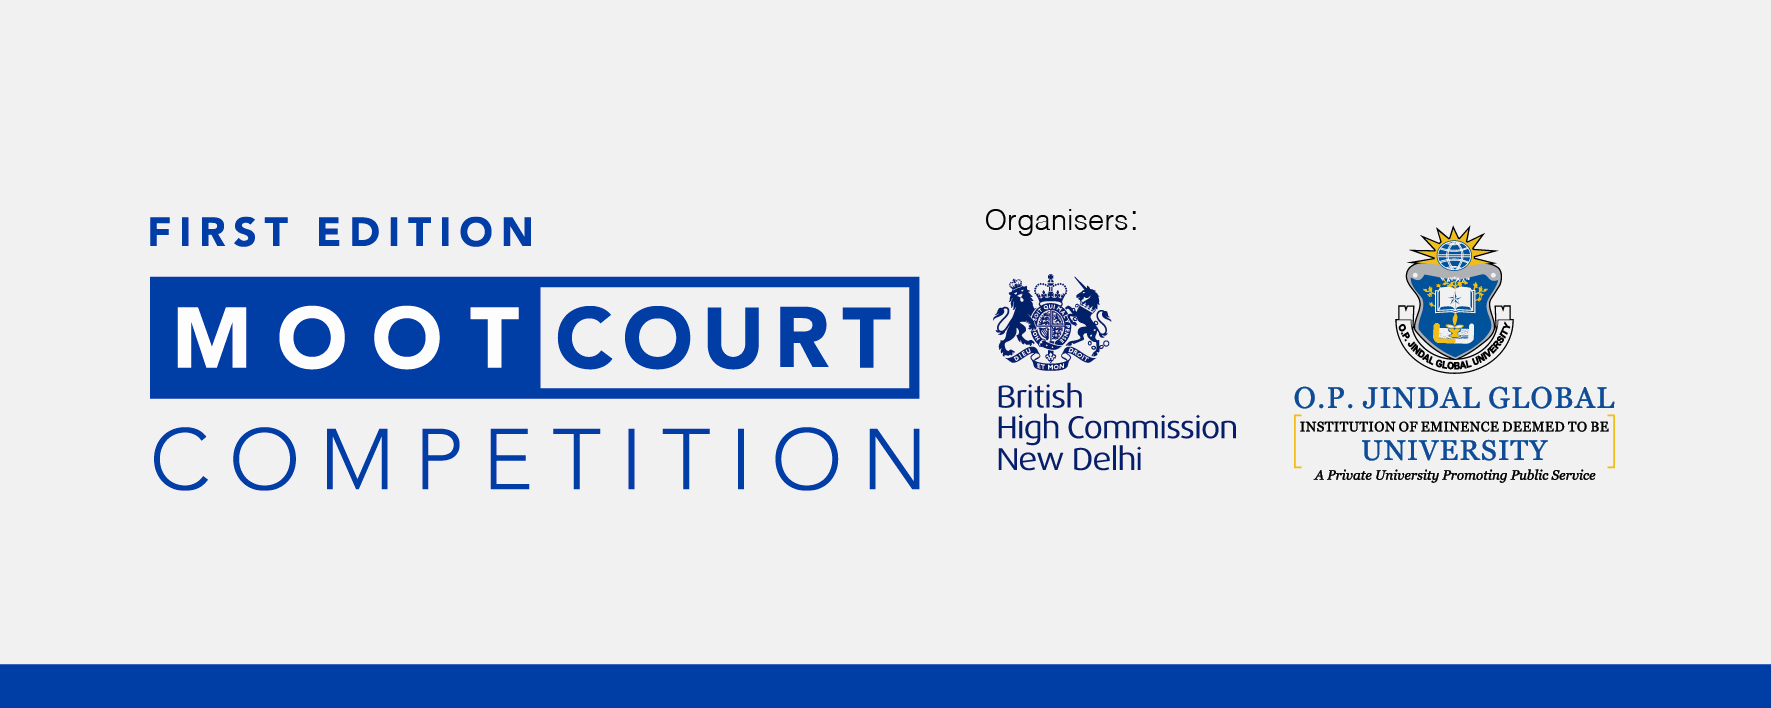 British High Commission Jindal Global University Moot Court Competition